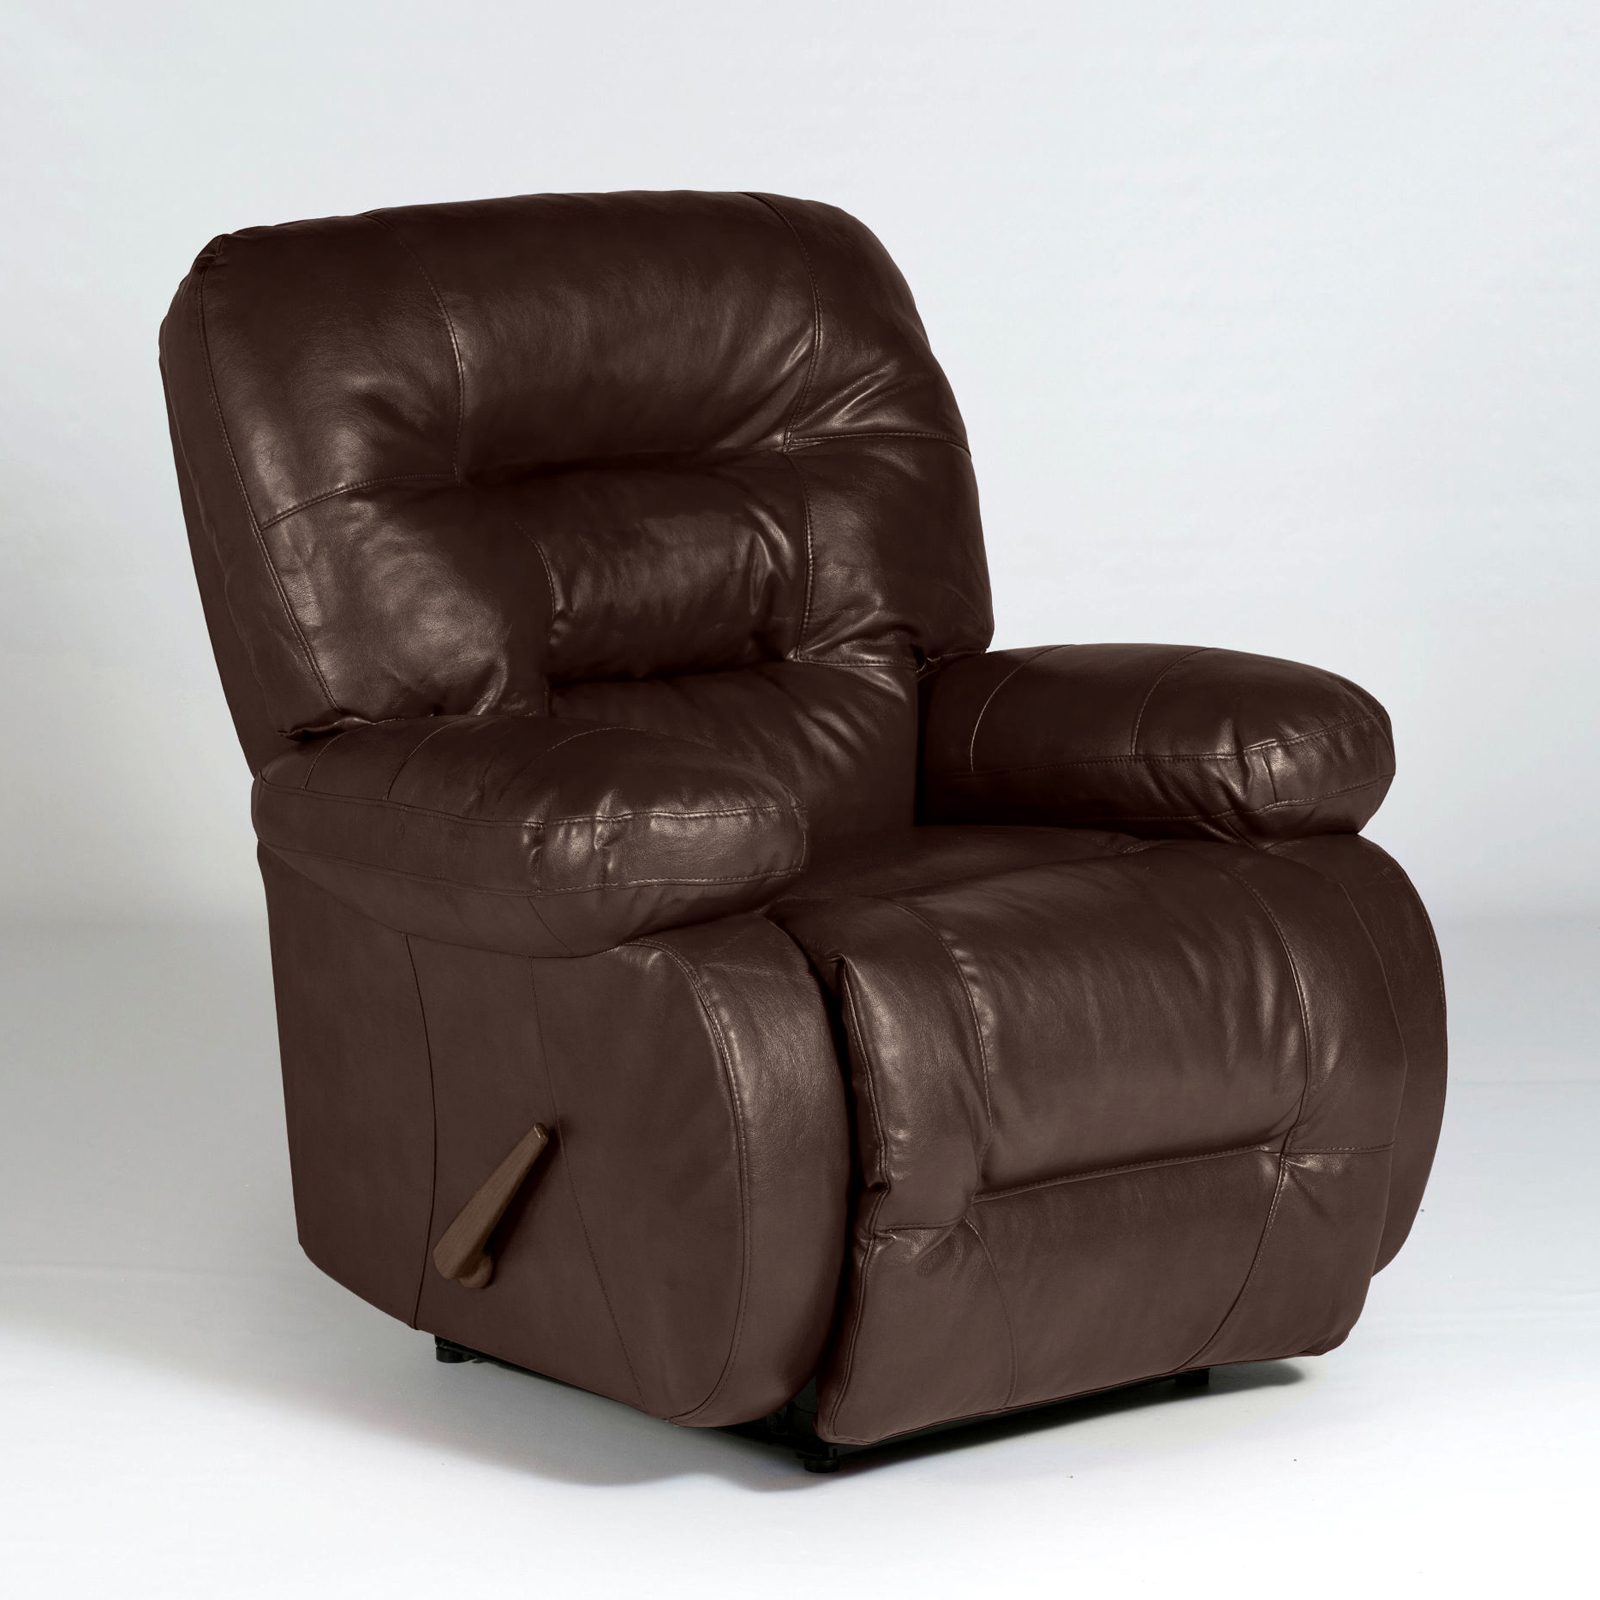 sears recliner chairs chair cover hire romford best home furnishings bradley space saver outlet